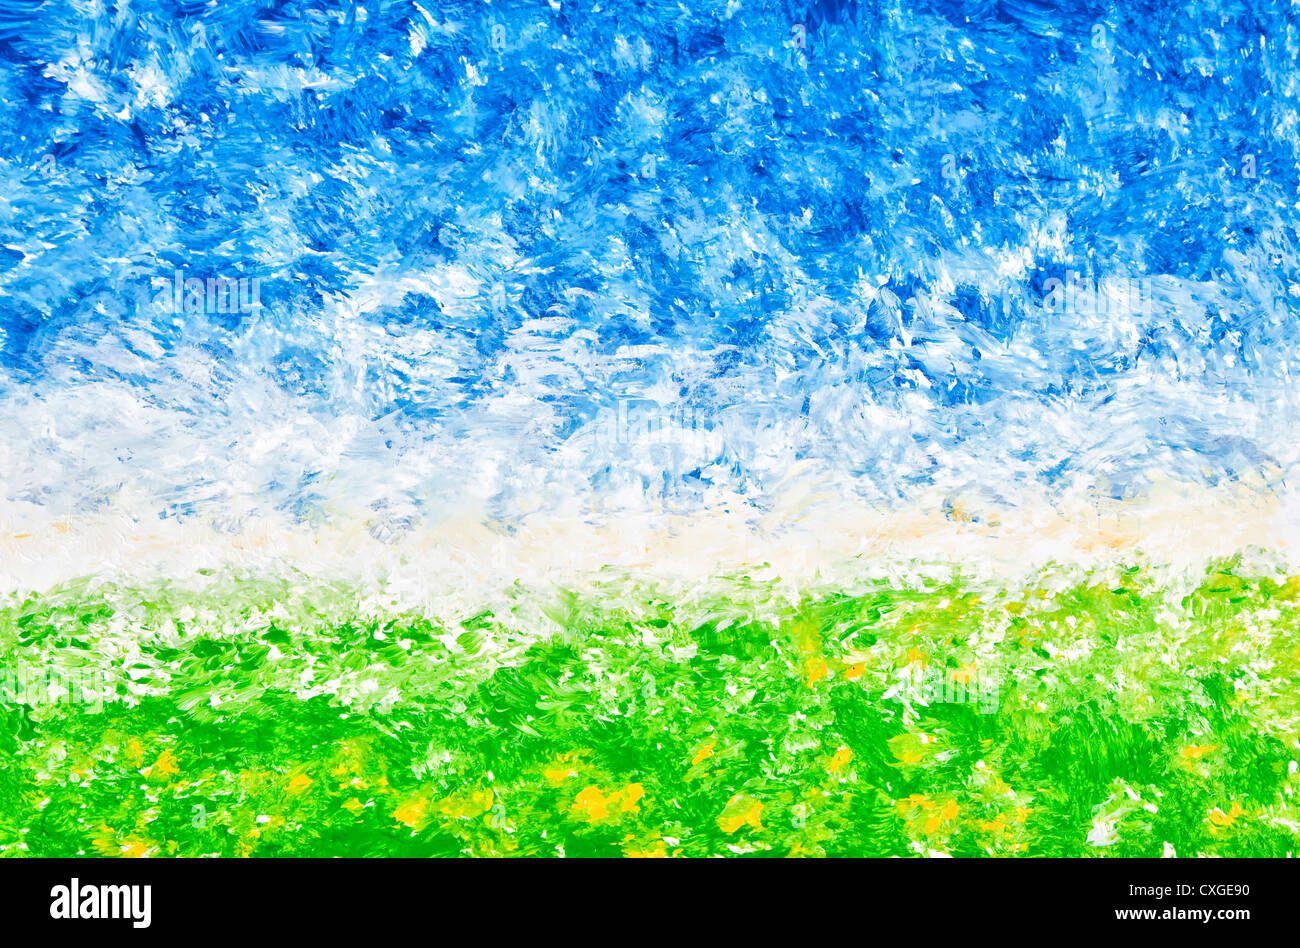 An abstract landscape comprised of rough strokes of acrylic paint. - Stock Image